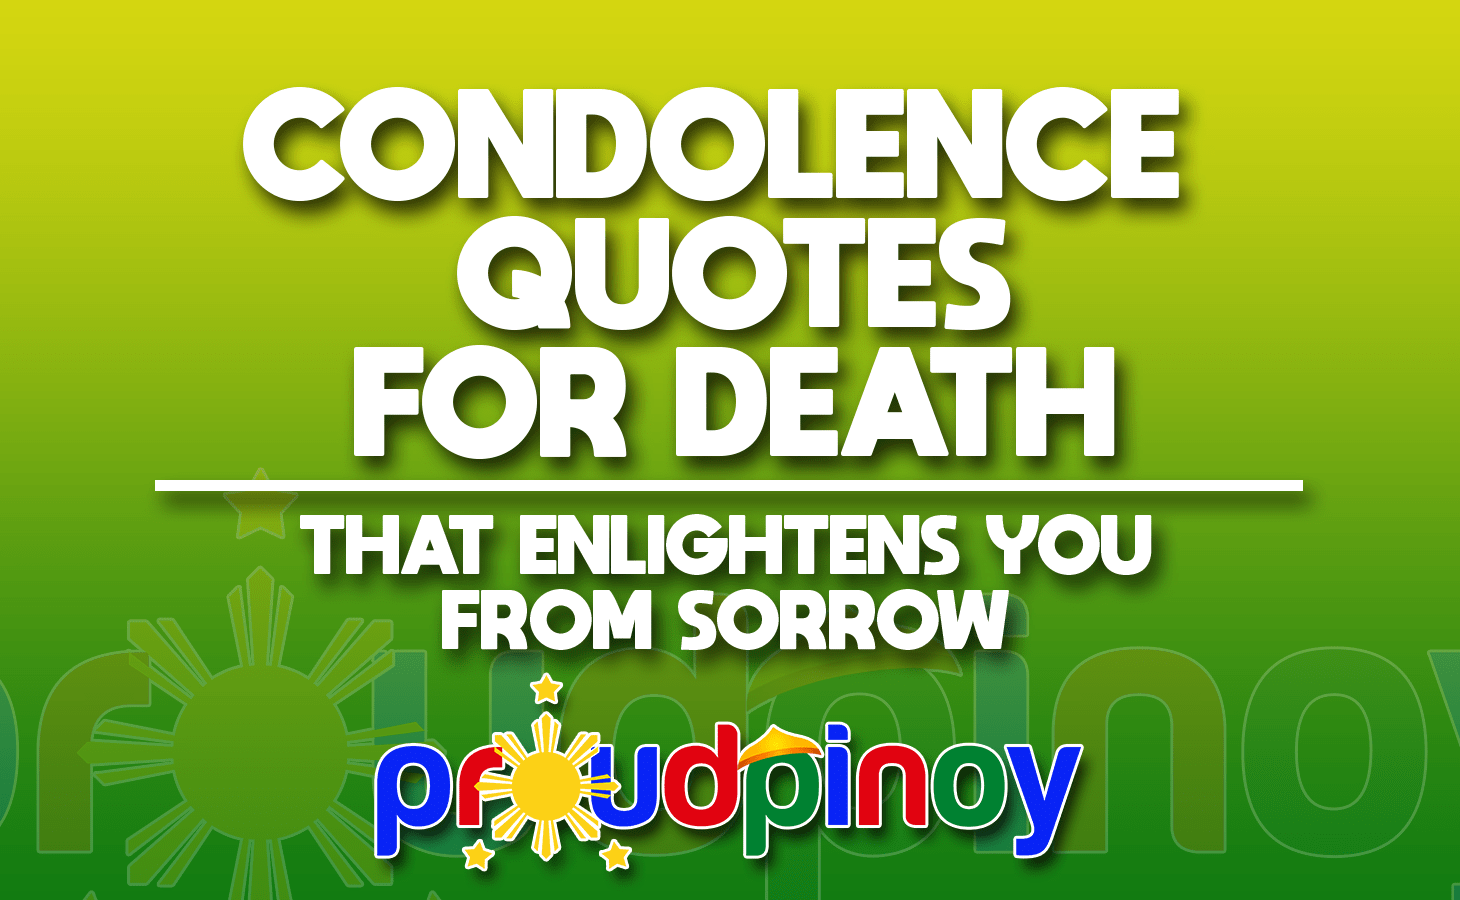 condolence quotes for death that enlightens you from sorrow